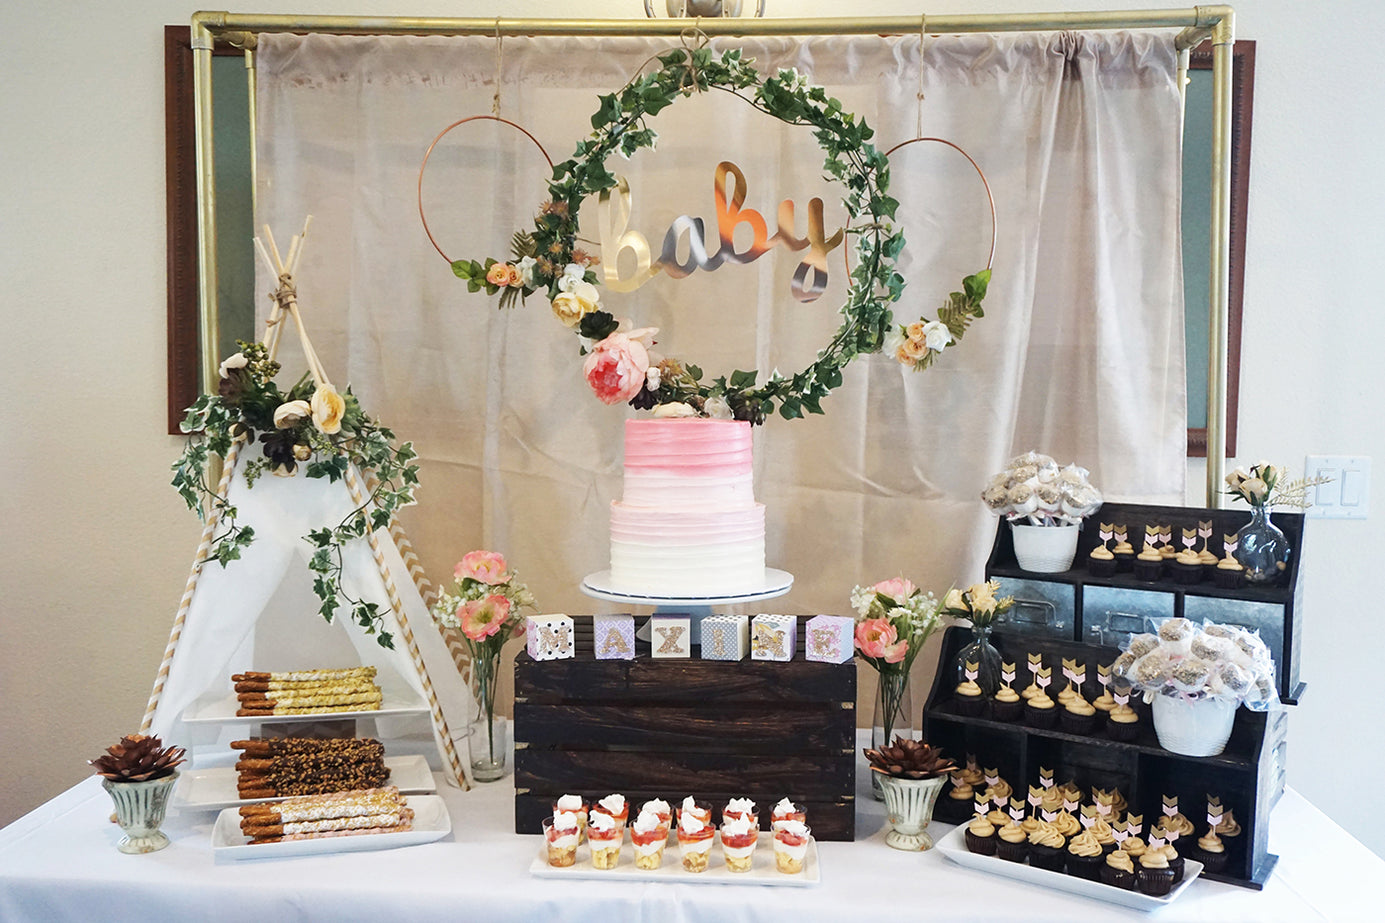 Baby Shower Decor Ideas for a Girl – Happiest Baby